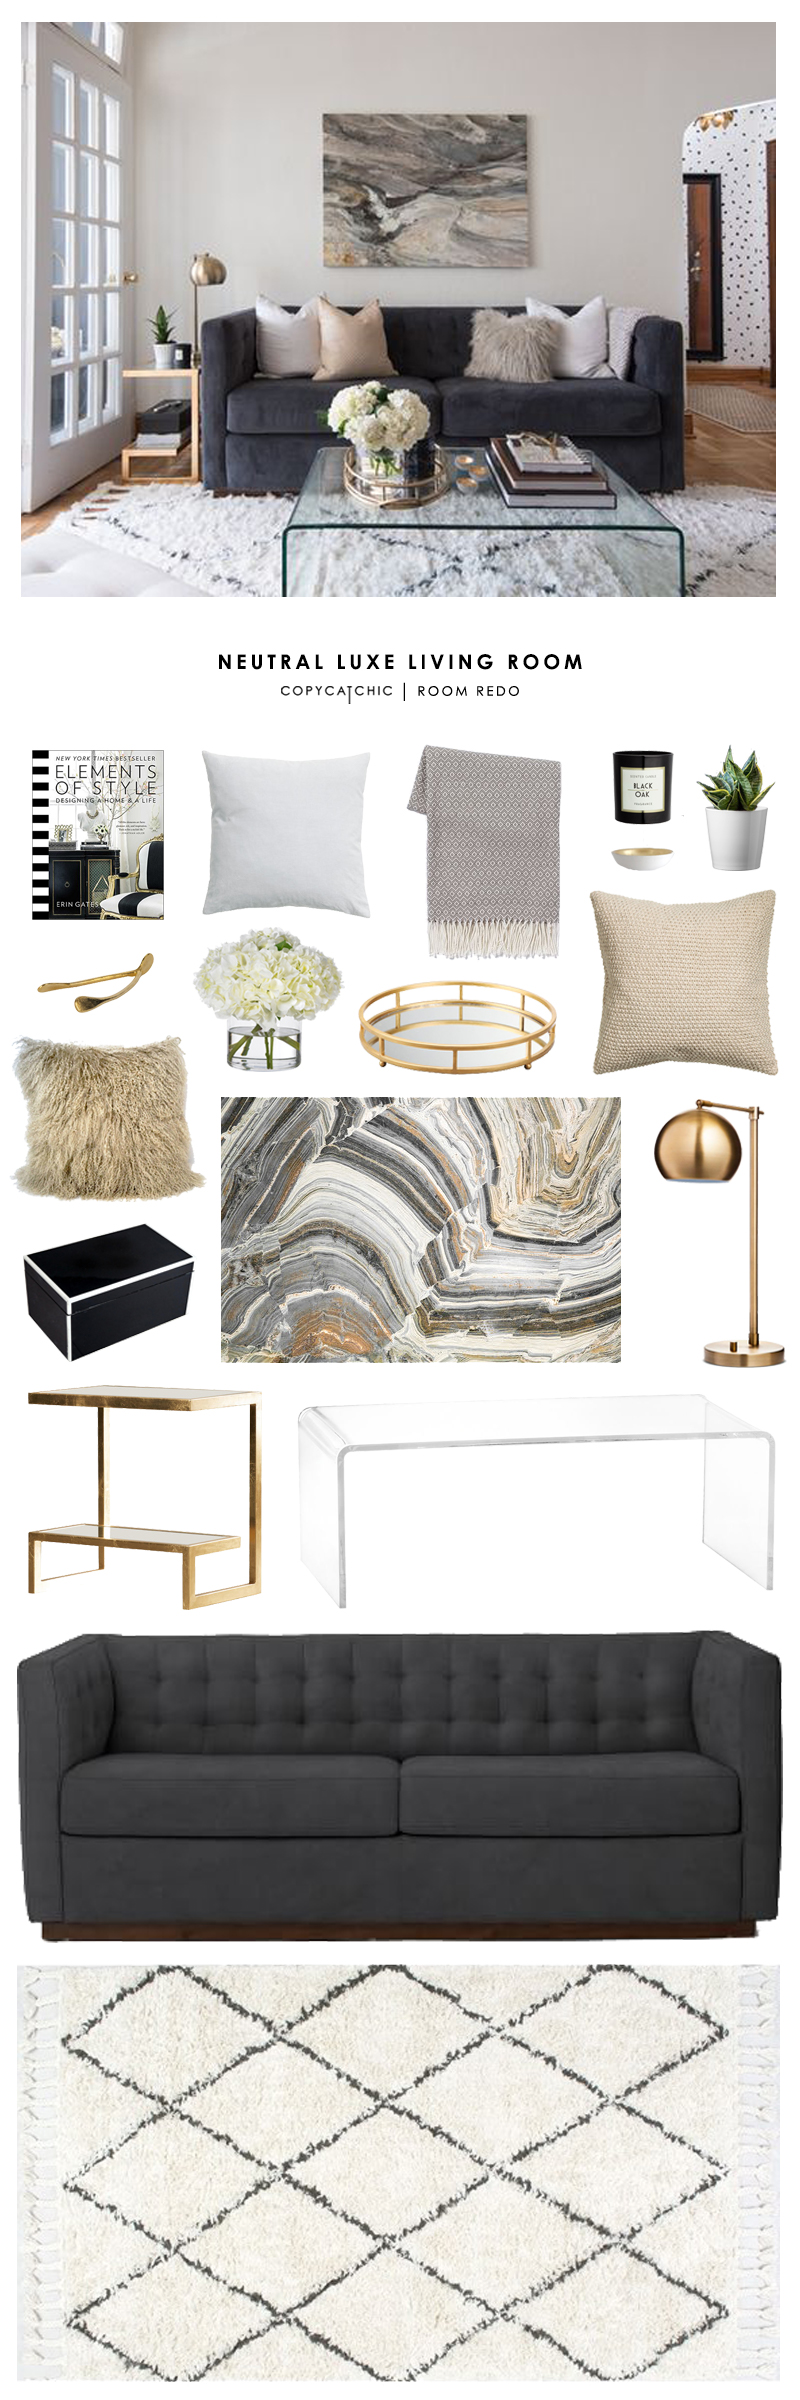 Copy Cat Chic Room Redo Neutral Luxe Living Room Copycatchic